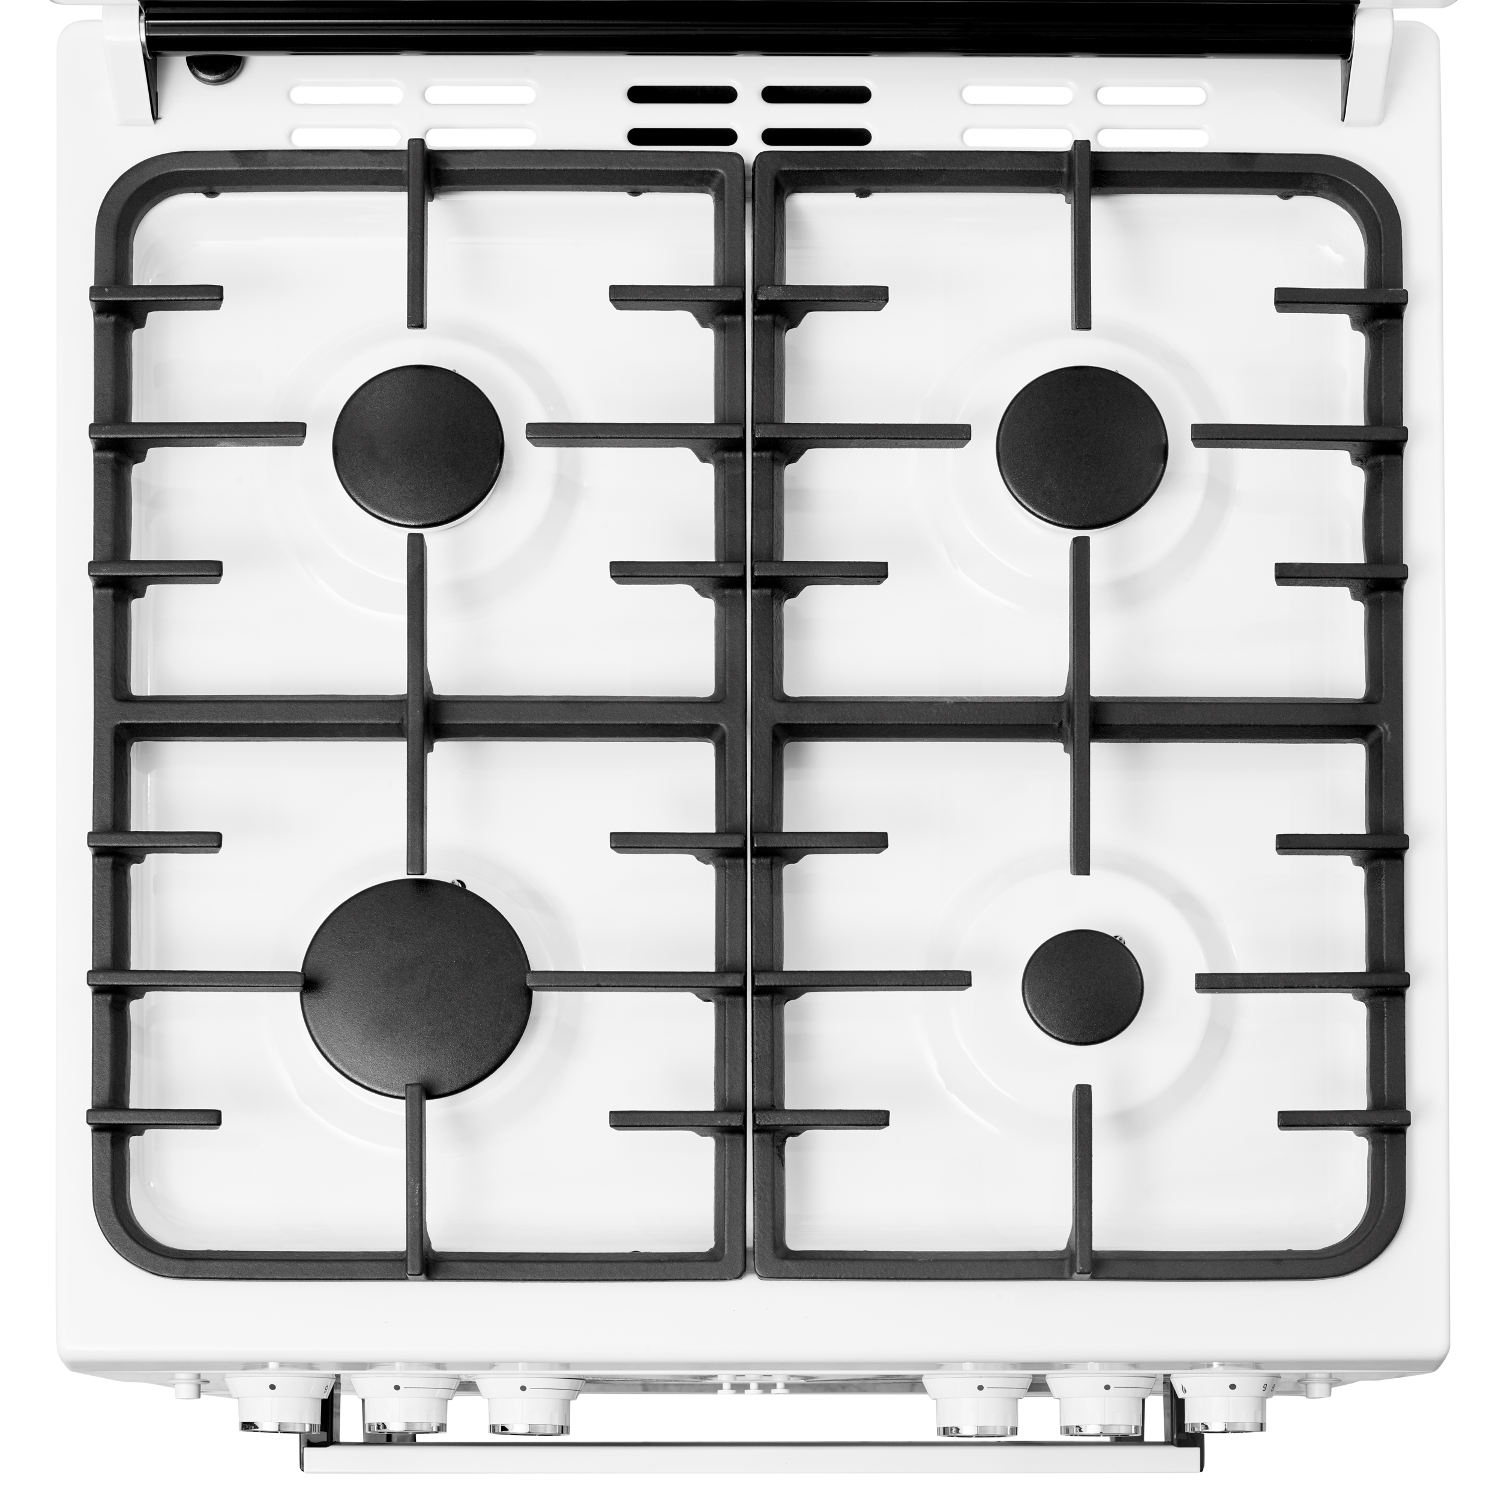 Beko 60cm Double Oven Gas Cooker with Glass Lid - White - 1